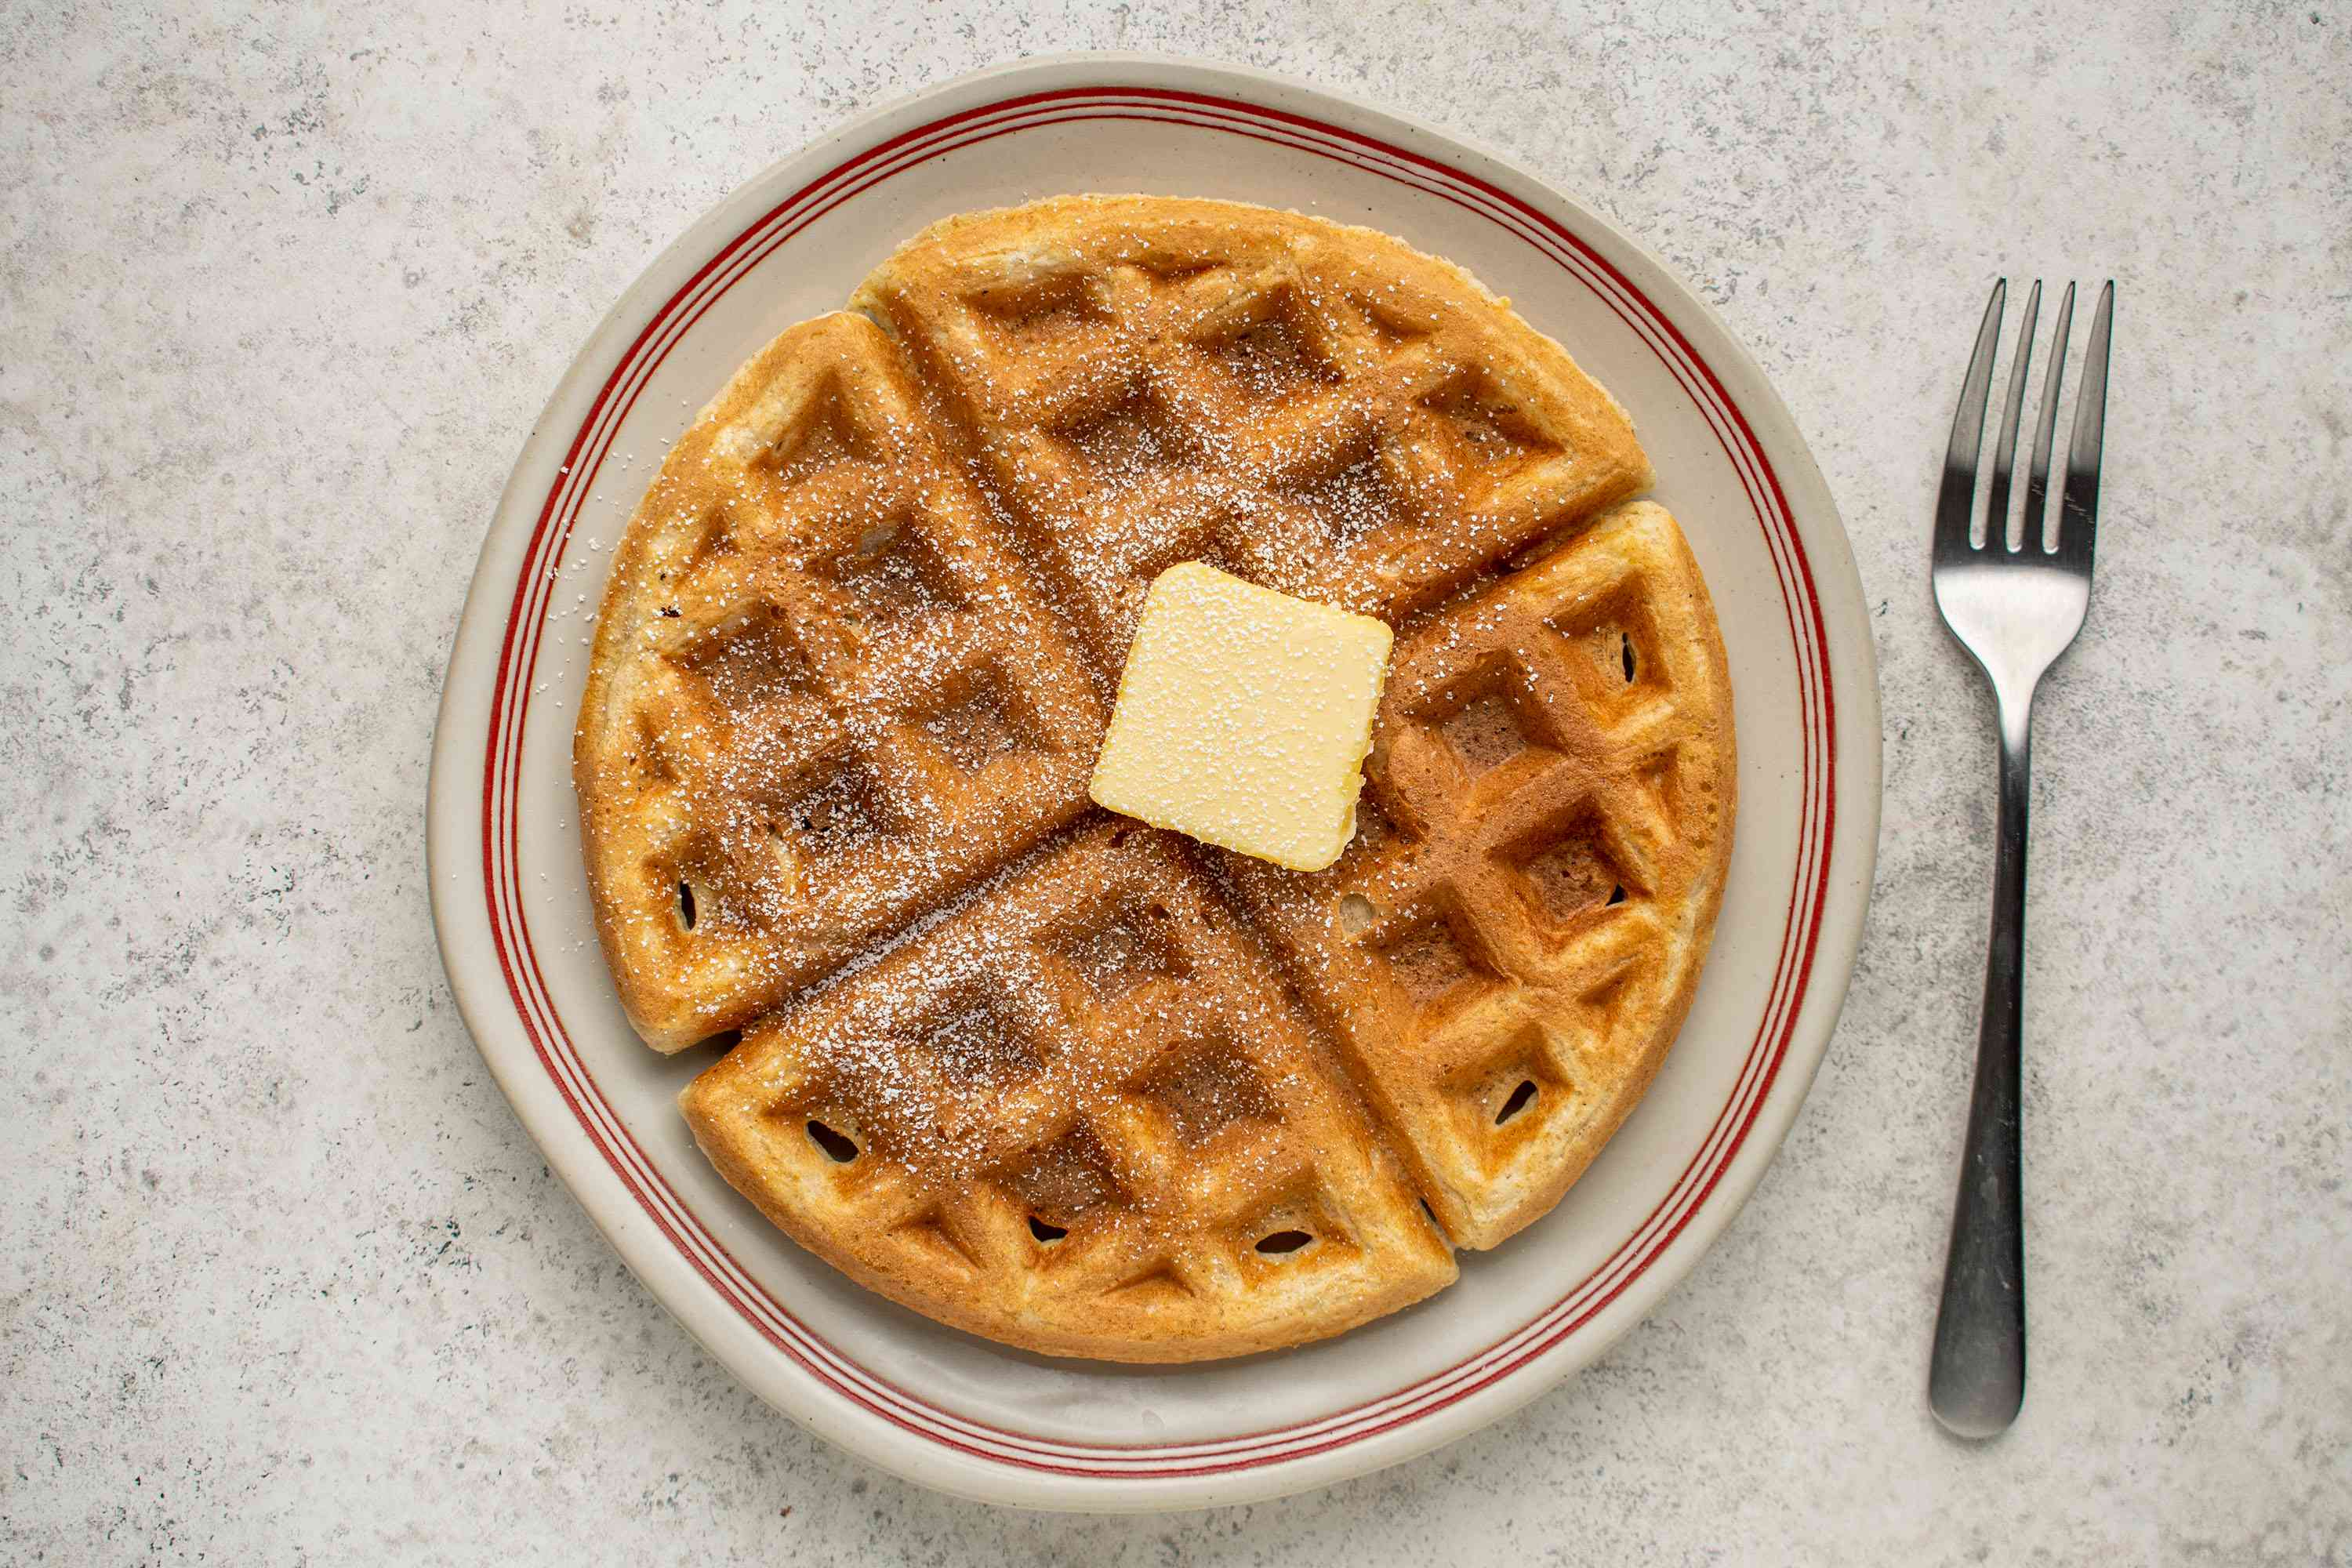 Sourdough Waffles with butter on a plate